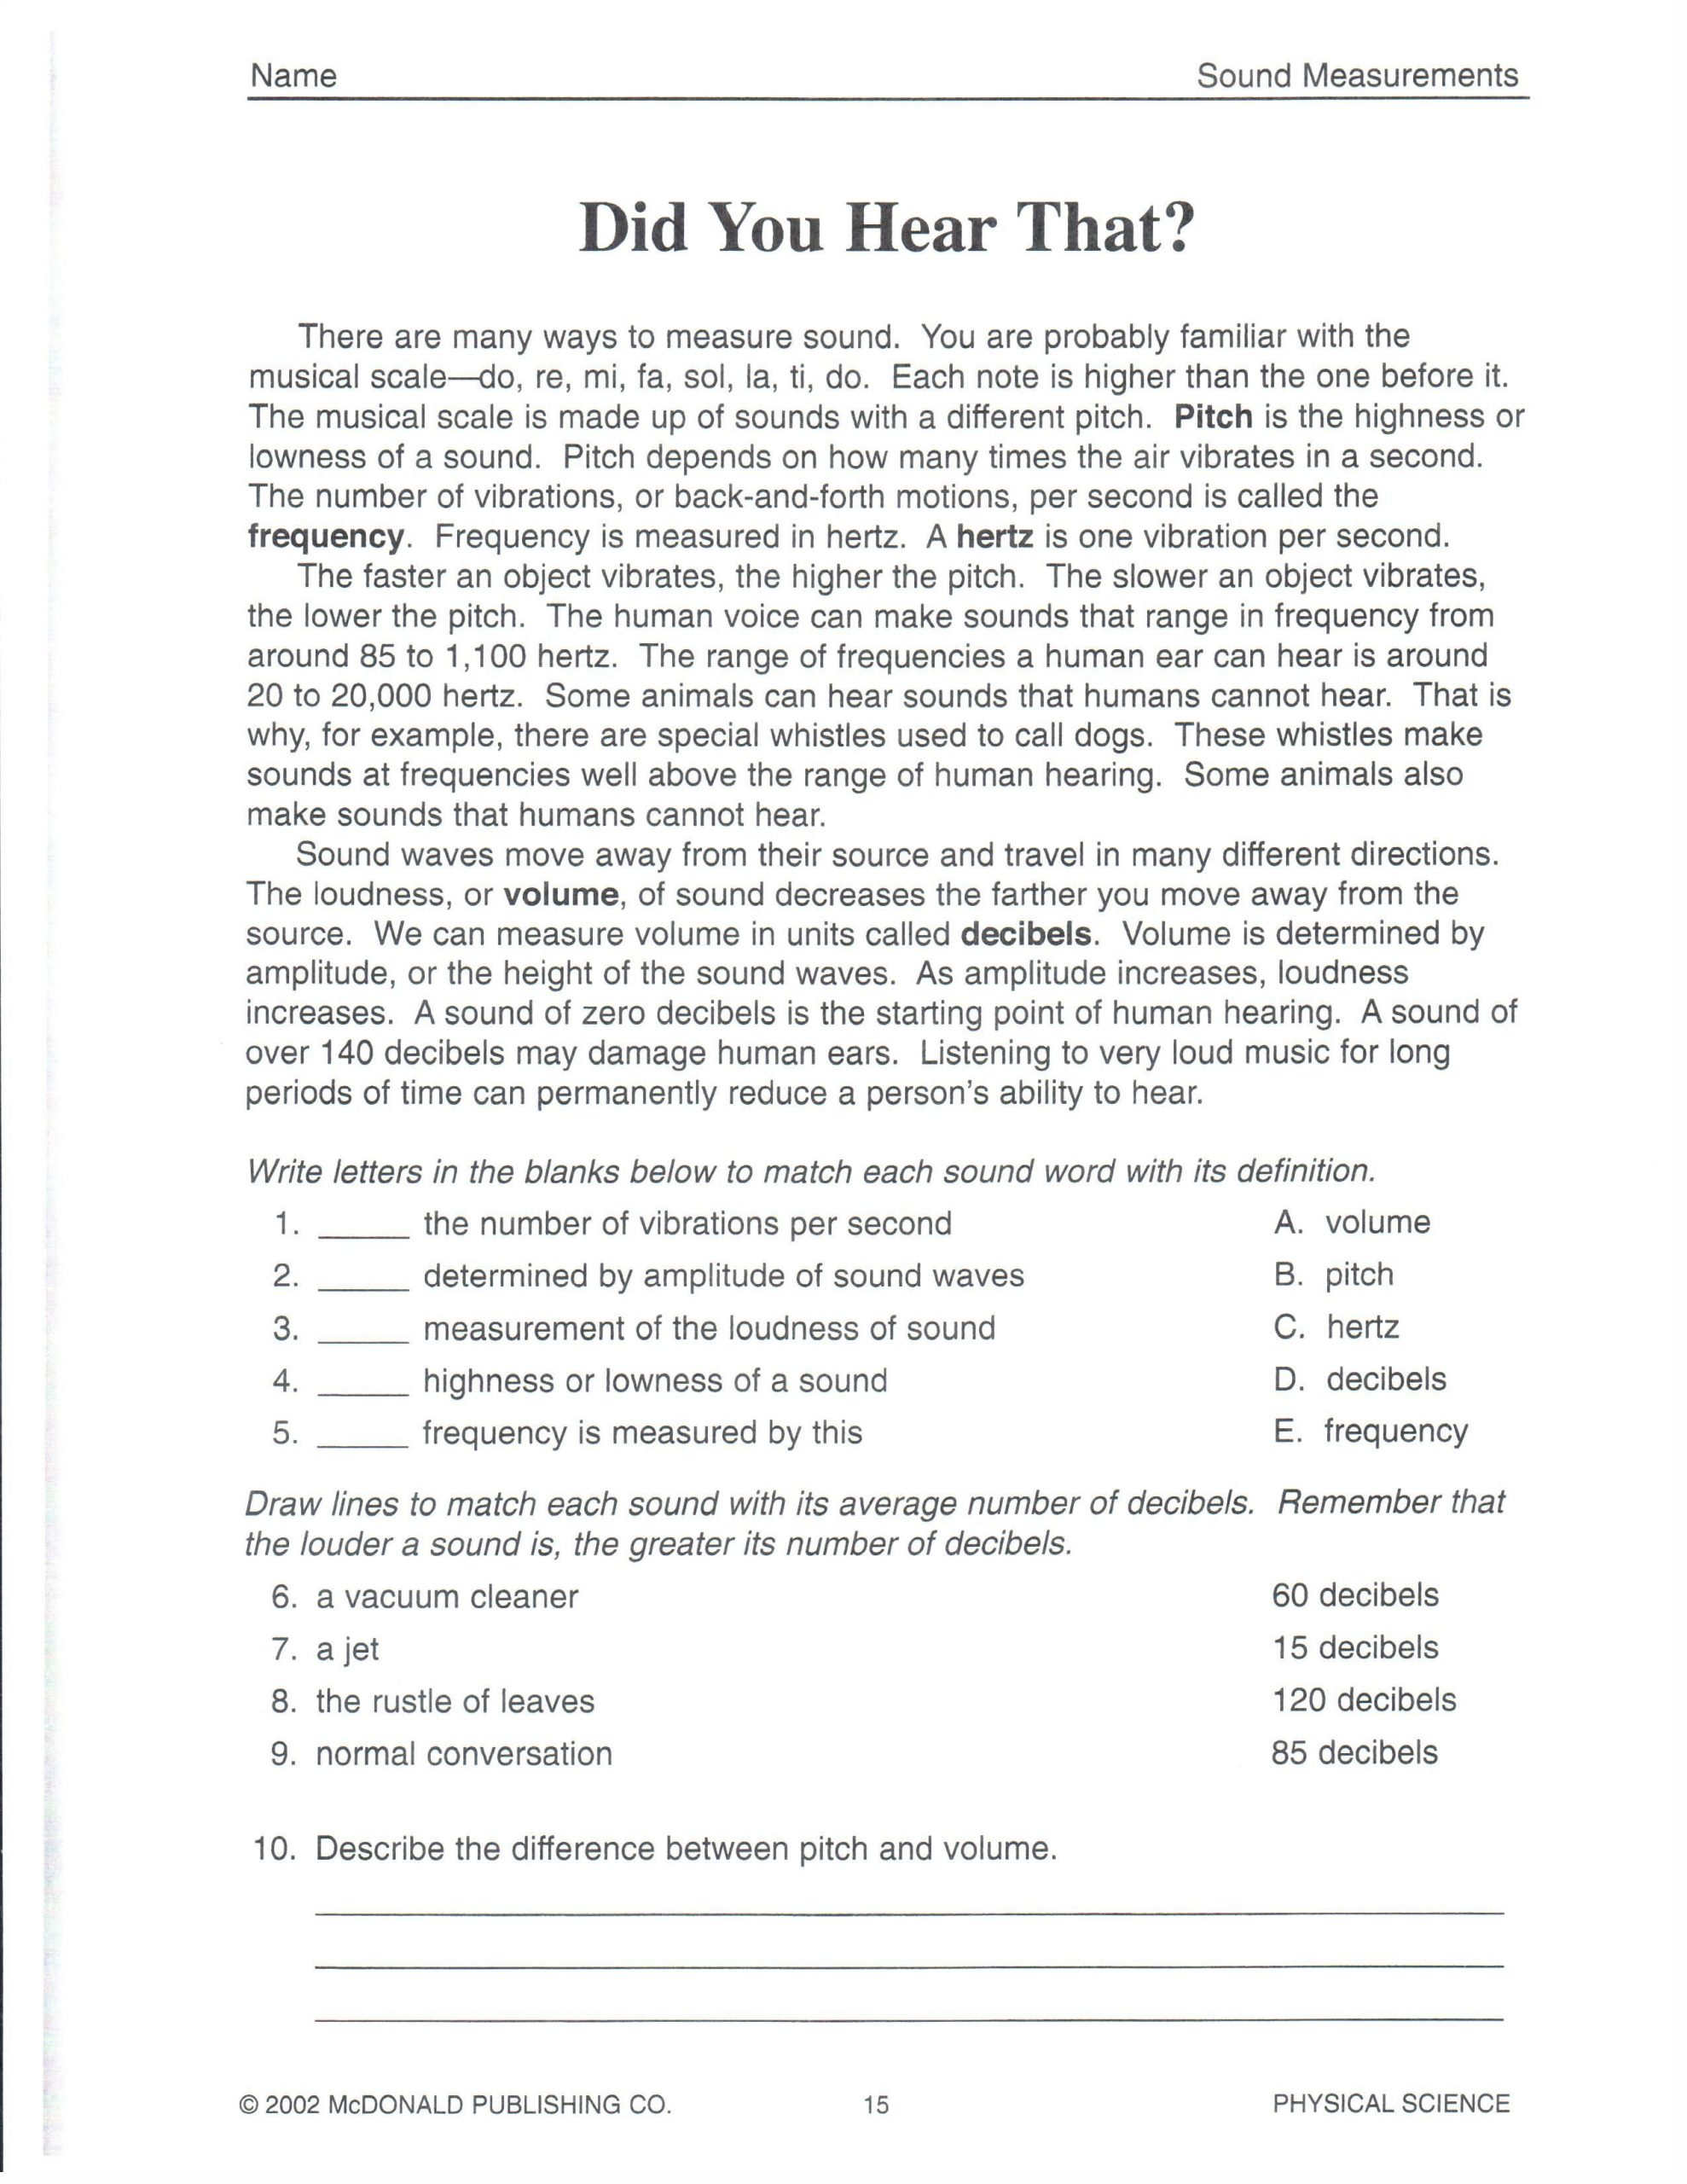 Science Worksheets for 7th Grade Physical Science Did You Hear that 101roxm 2 550—3 300